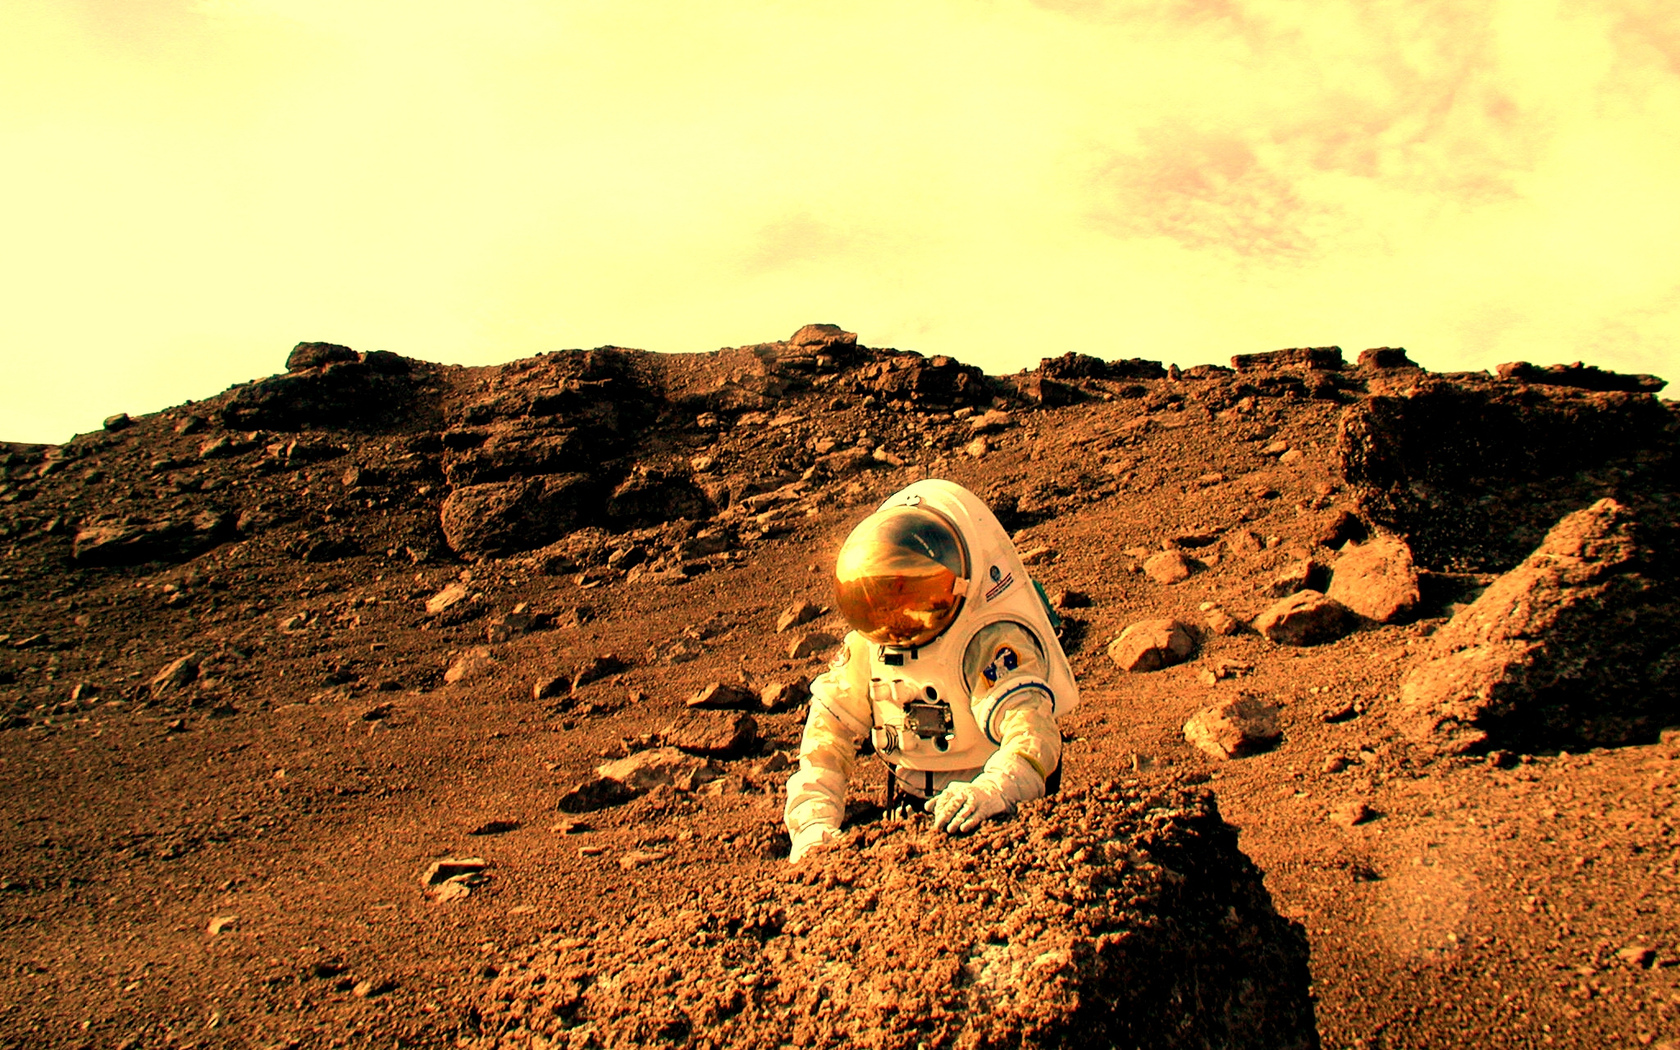 essay on life on mars Free essays on life on mars get help with your writing 1 through 30.